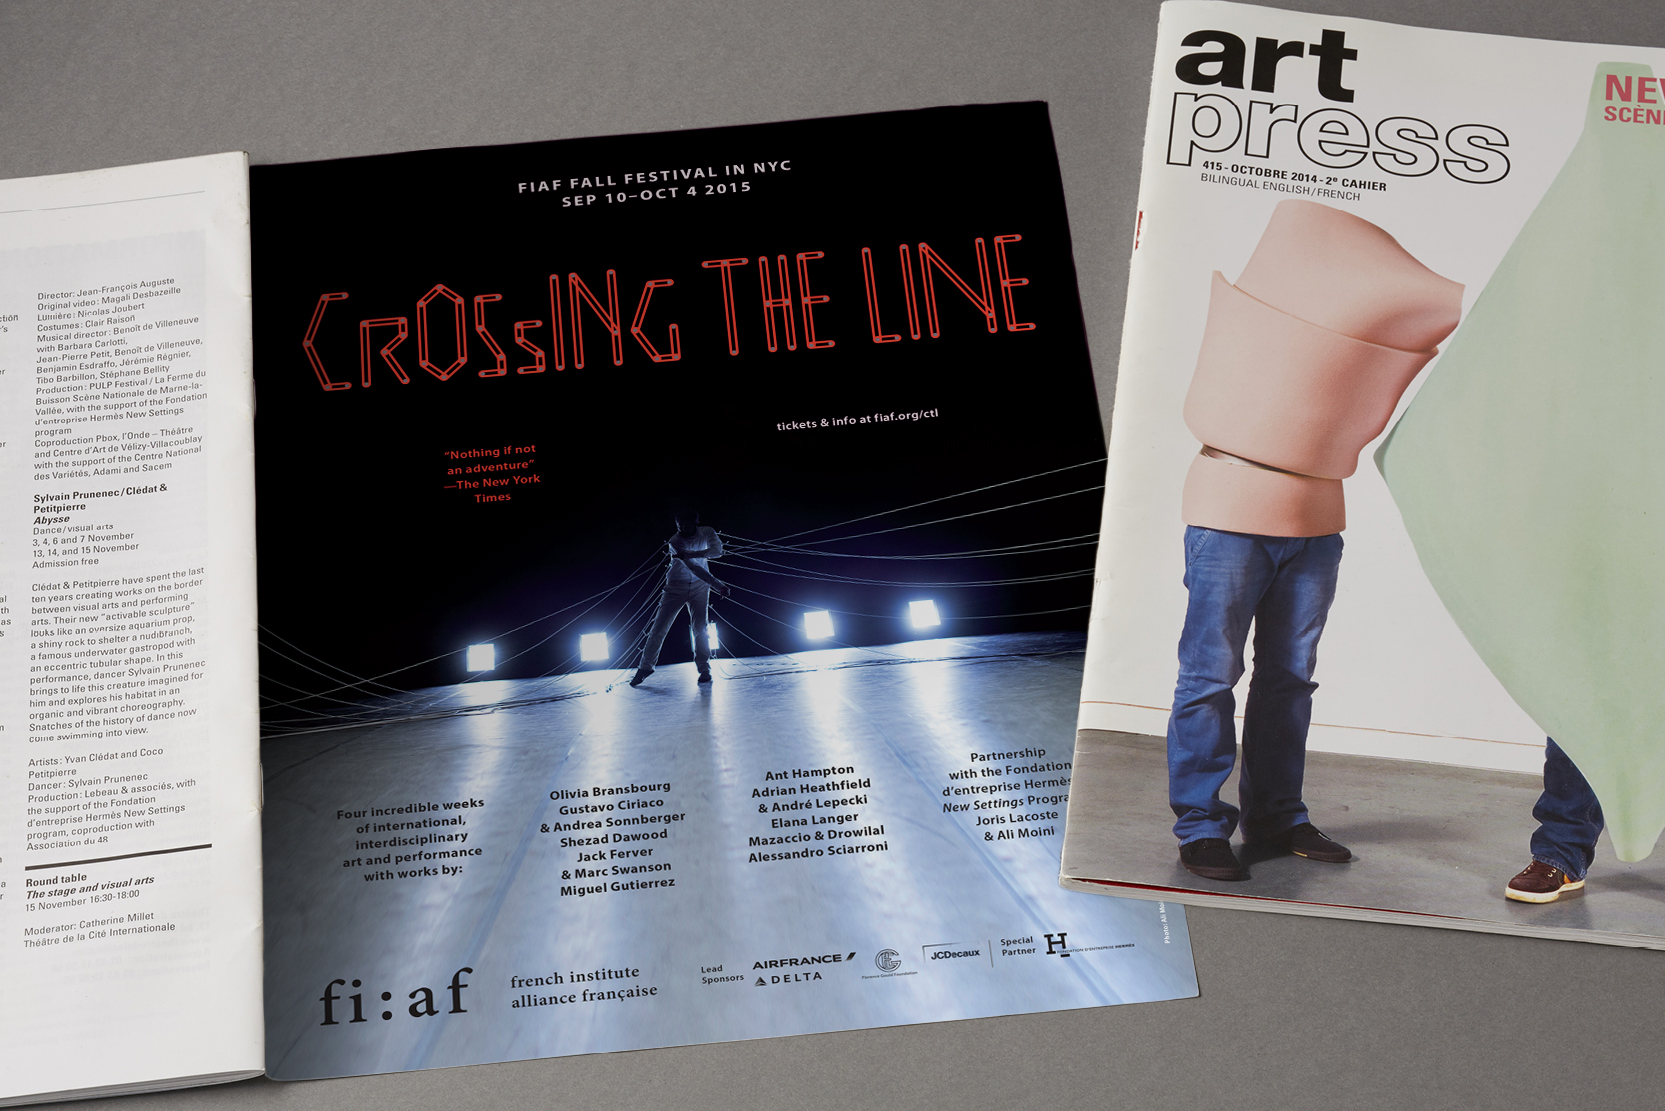 Crossing the Line 15 ARt Press Marion Bizet.jpg